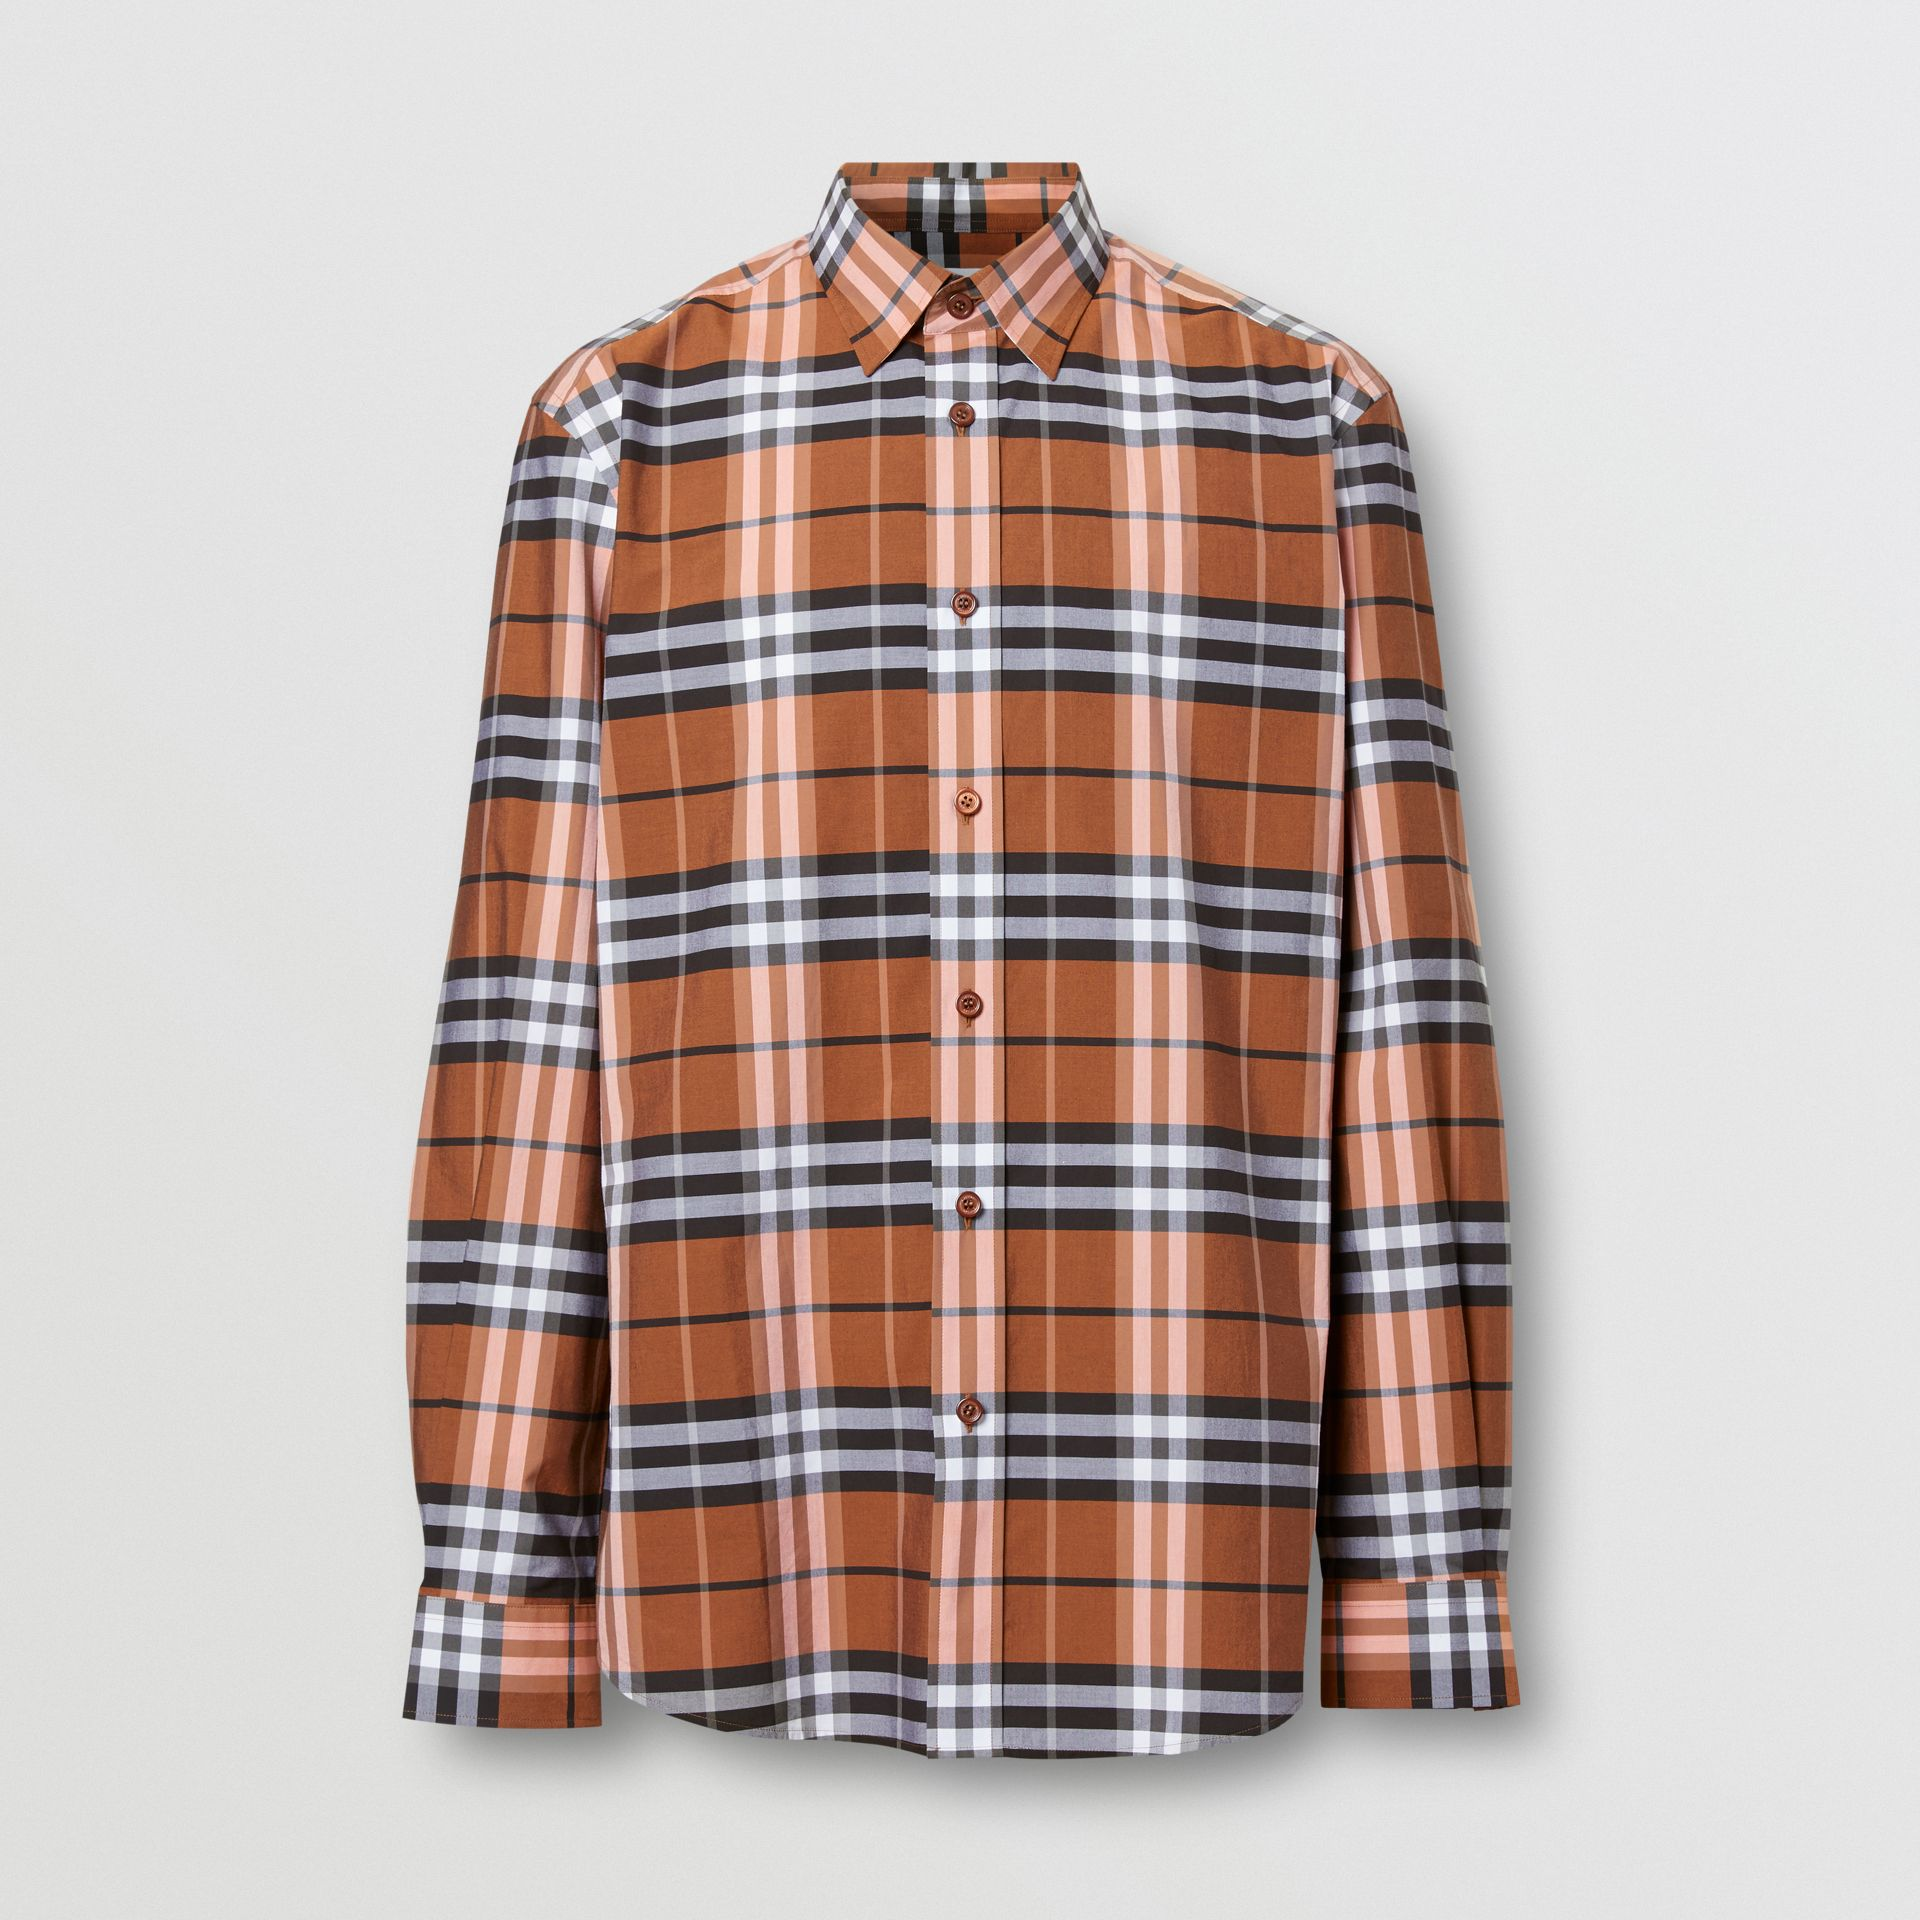 Vintage Check Cotton Poplin Shirt in Clementine - Men | Burberry Australia - gallery image 3